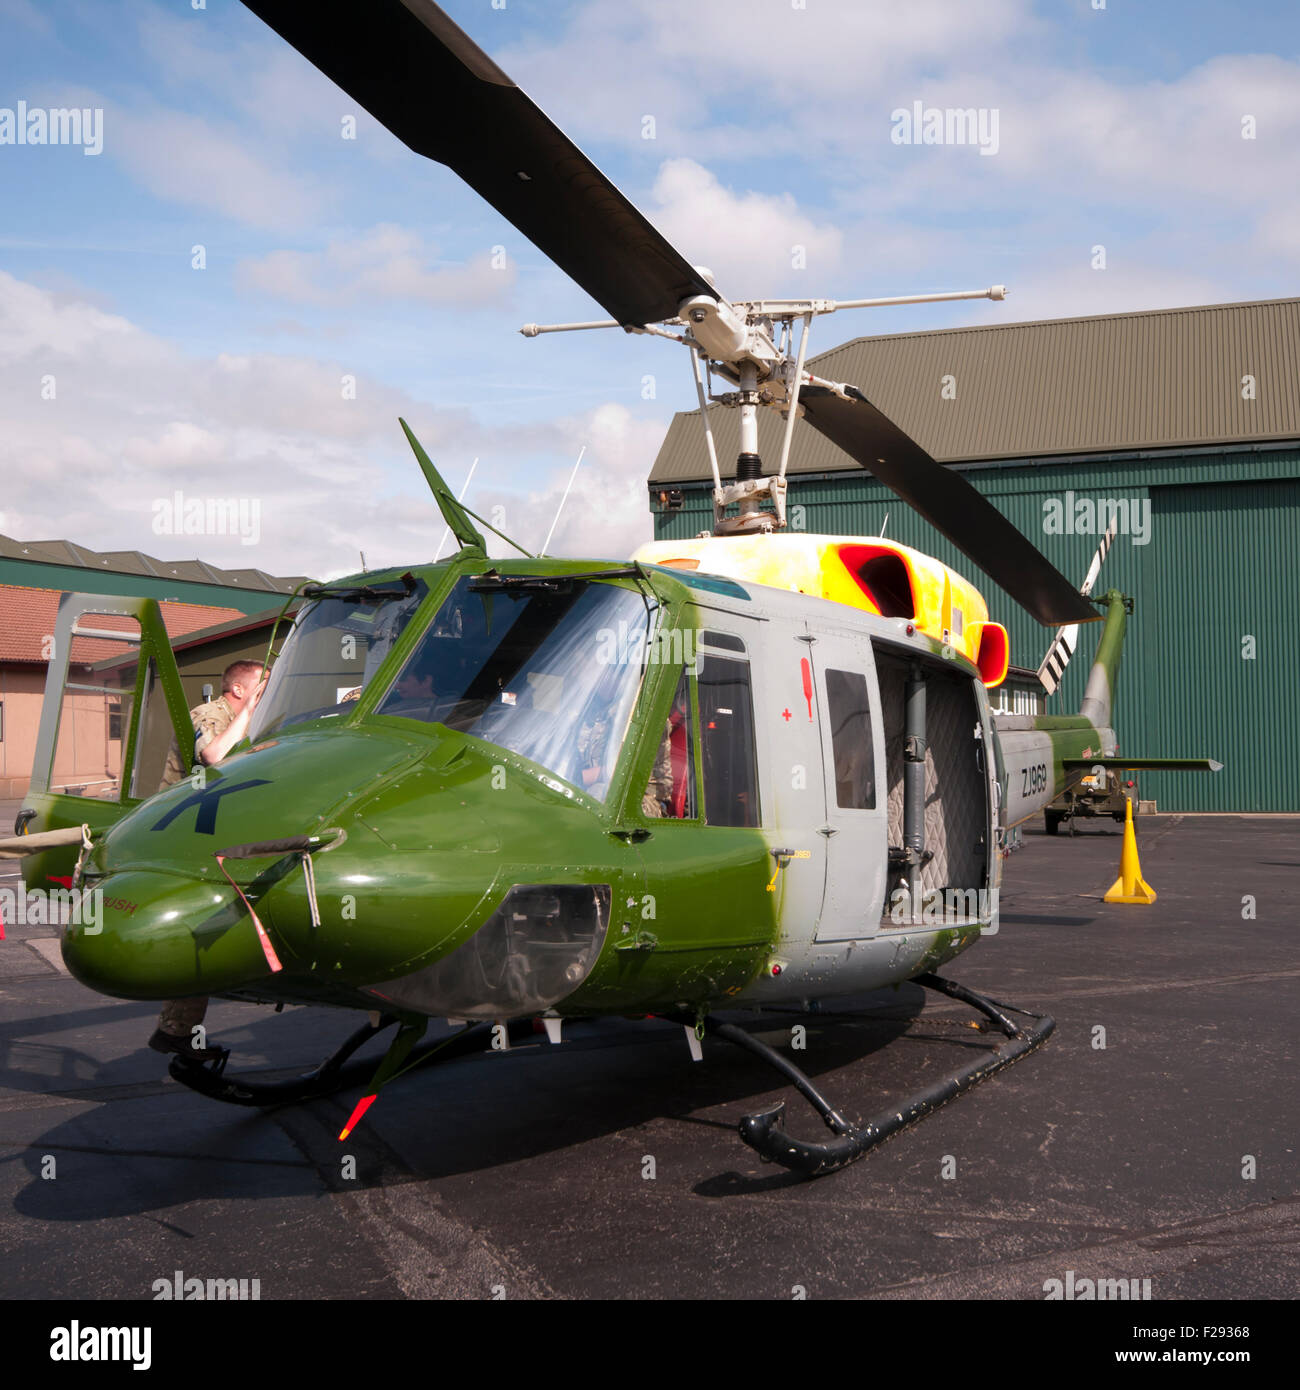 Front View Of A British Army Bell 212 AH.1 Helicopter - Stock Image